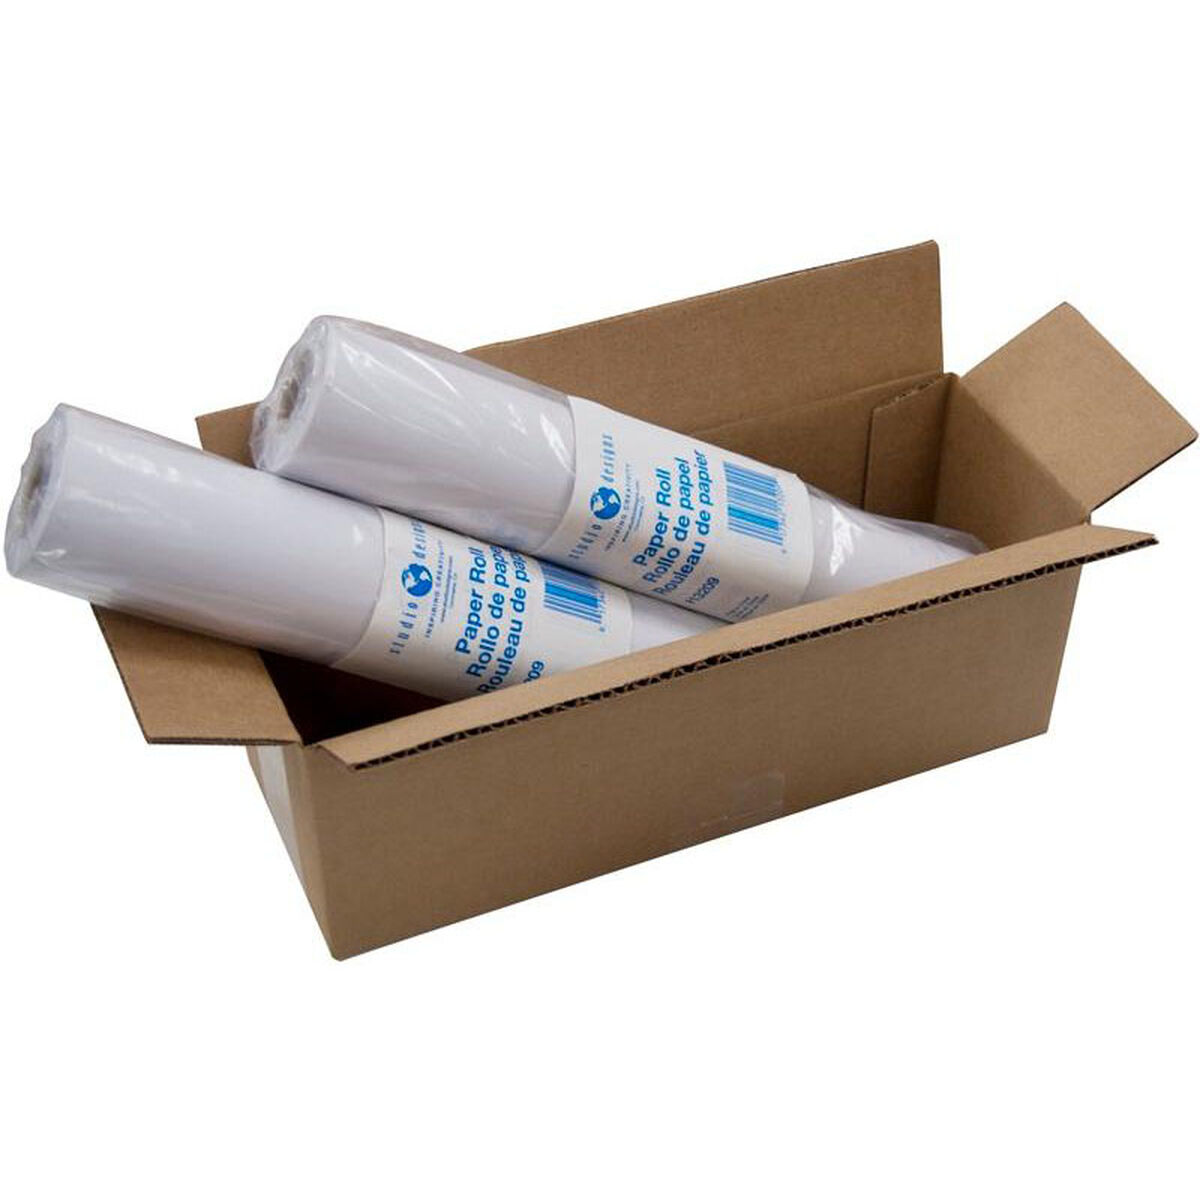 Custom research paper tubes southwest